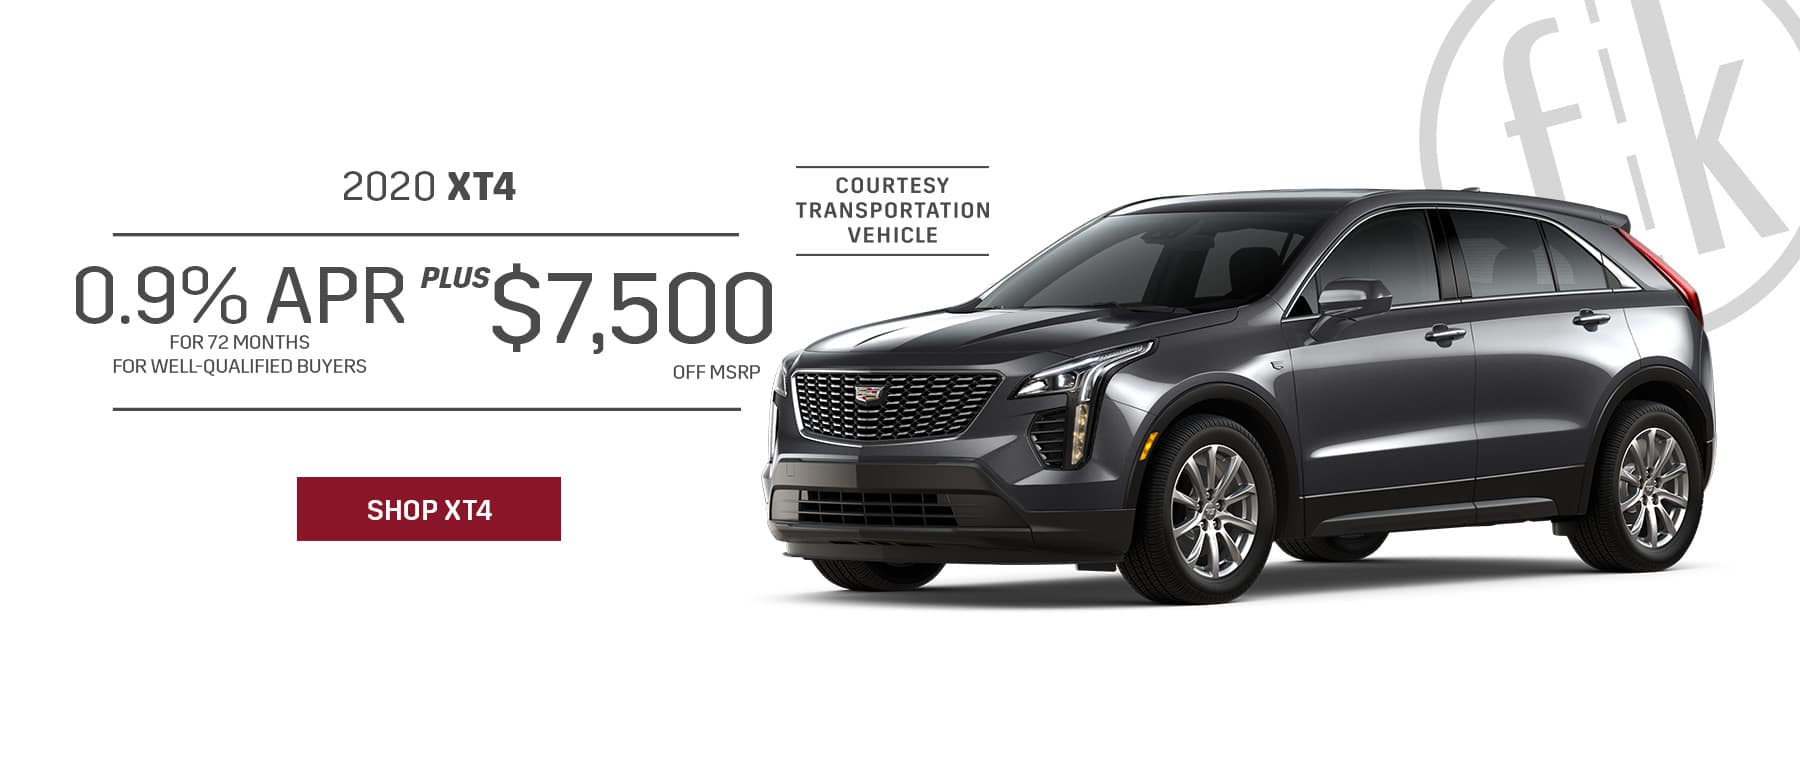 2020 XT4 0.9% for 72 mos. PLUS $7,500 Off